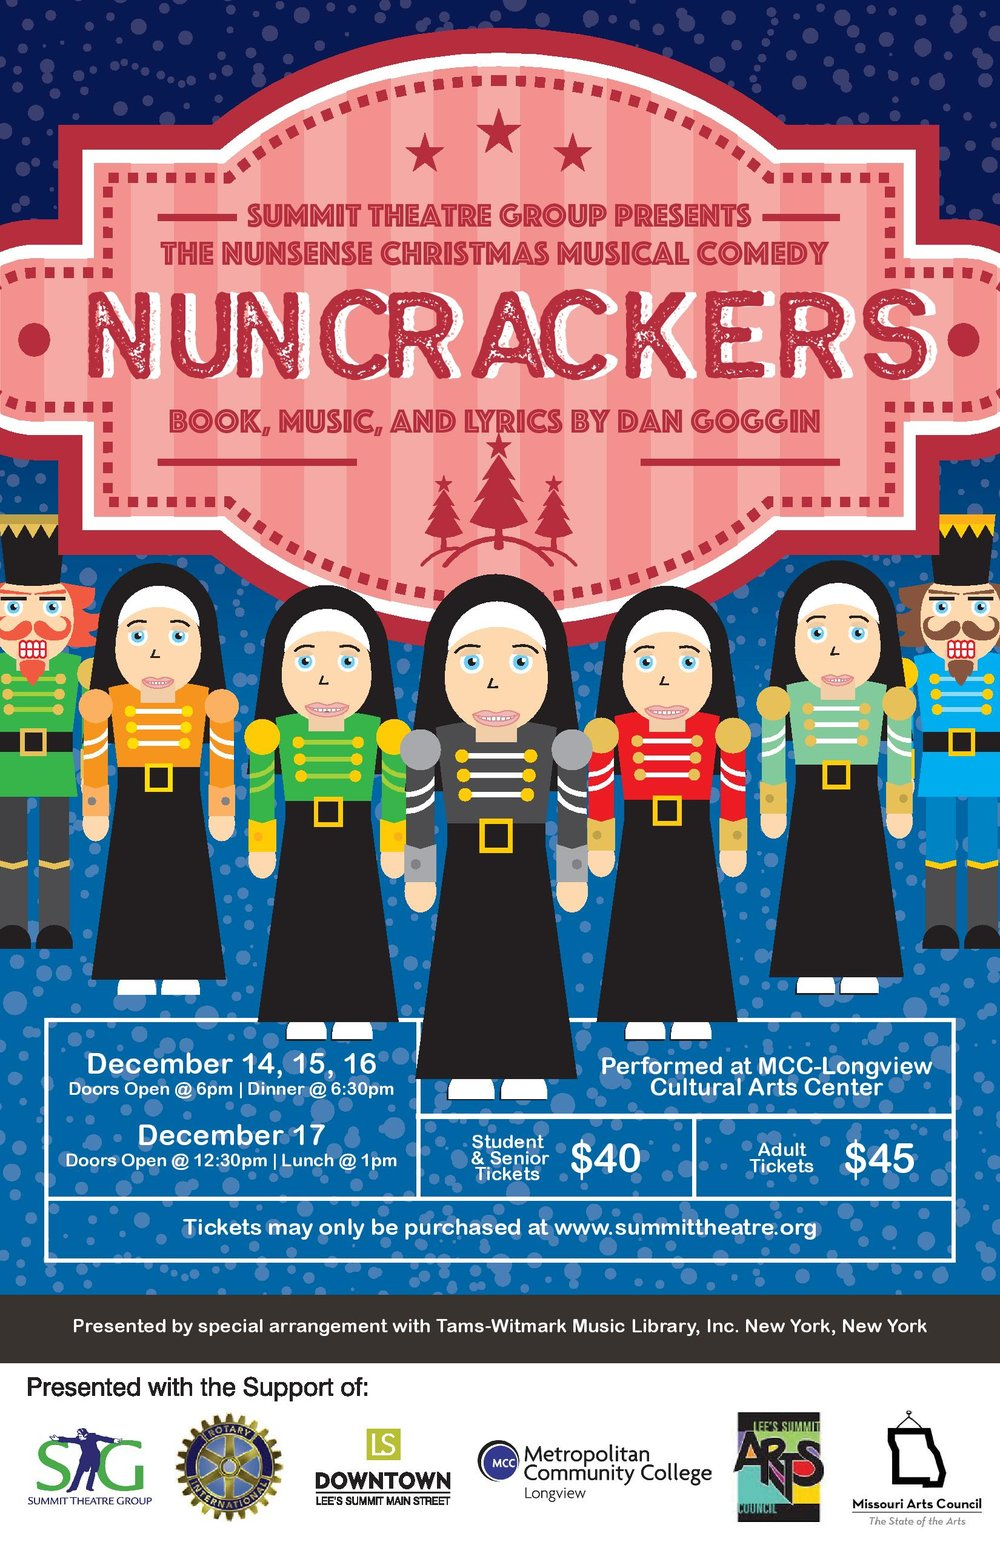 Dec. 14-16 at the MCC-Longview Cultural Arts Center  -   Tickets for 'Nuncrackers' are $45 ($40 for students and seniors) and available online.